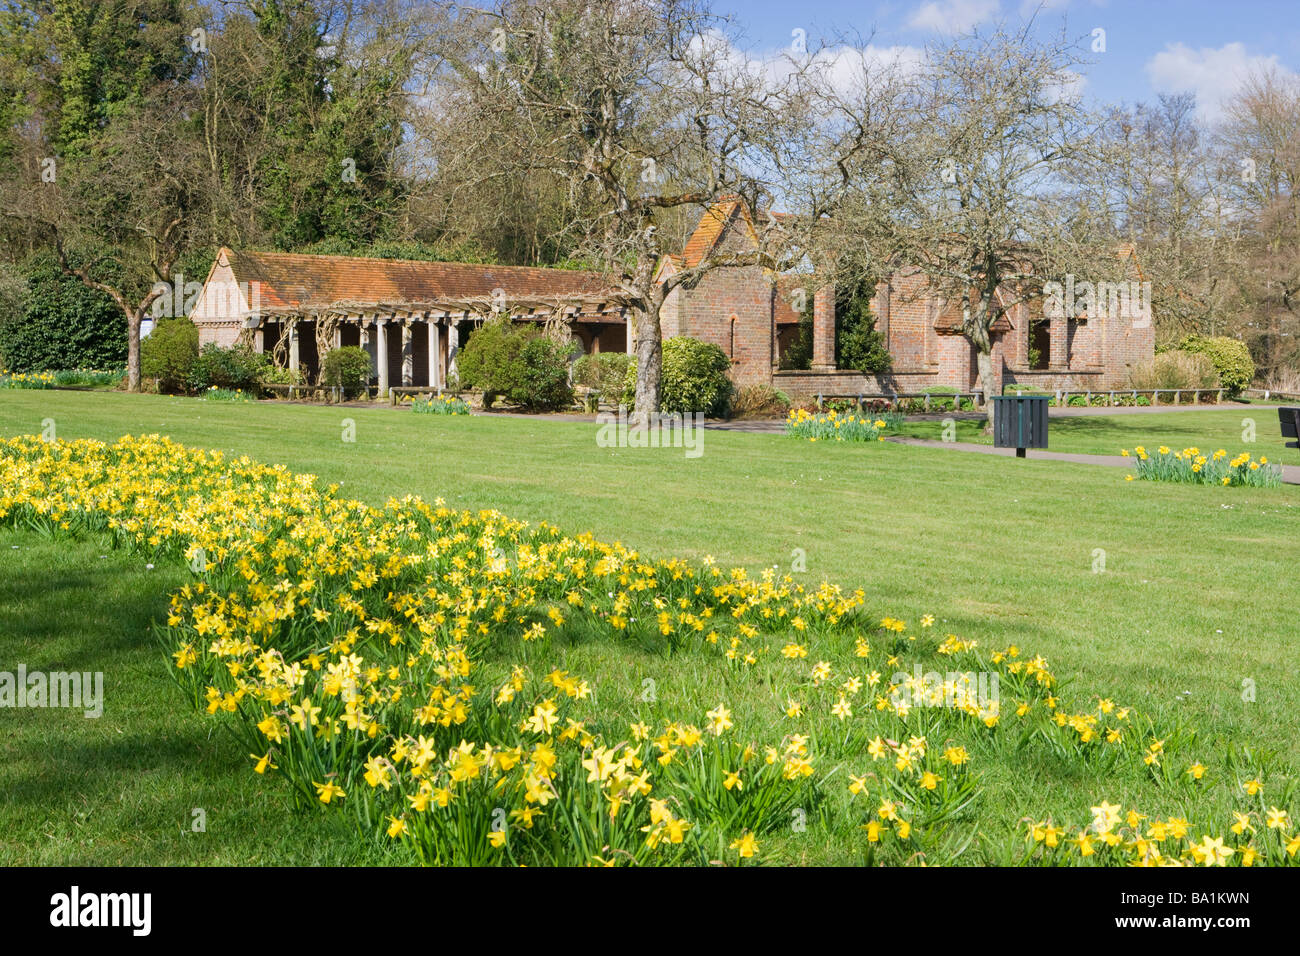 Phillips Memorial Cloister with daffodils, Godalming, Surrey, UK. - Stock Image